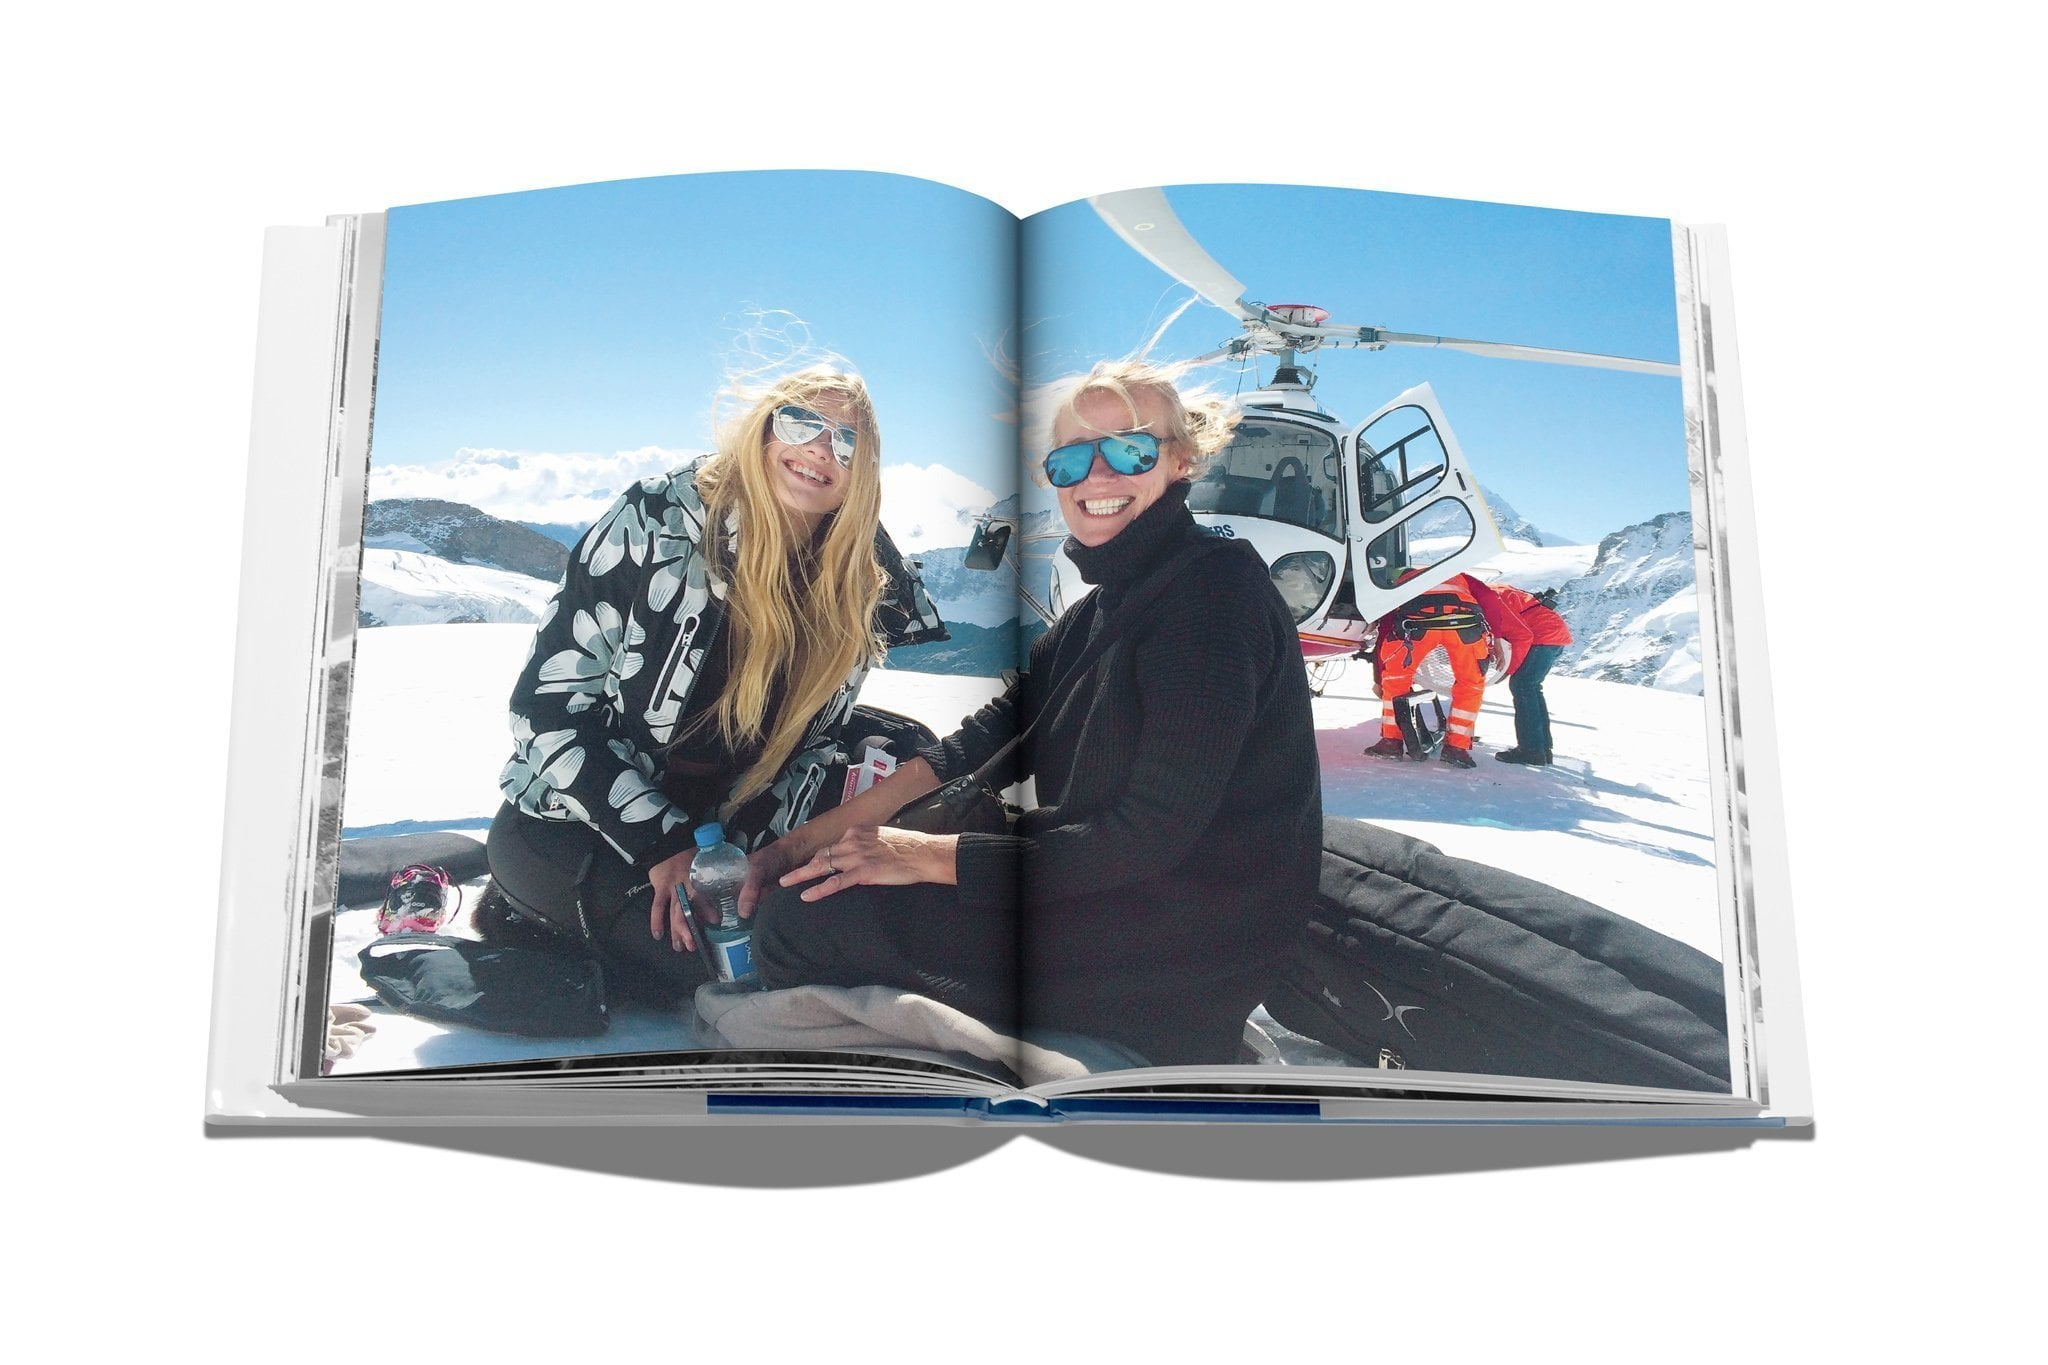 In the Spirit of Gstaad - Assouline